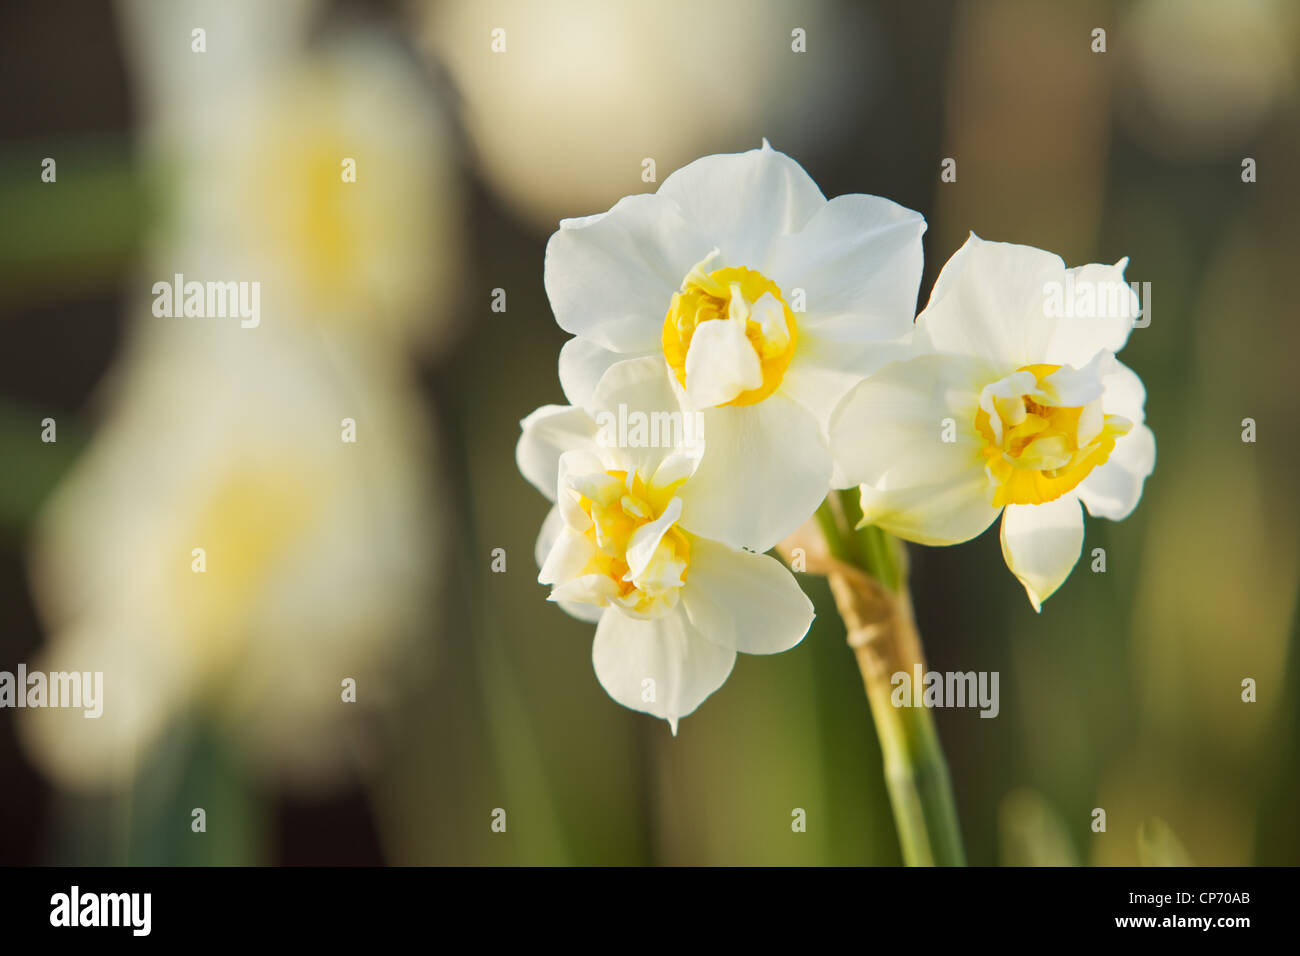 Daffodil 'Cheerfulness' or Narcissus 'White Cheerfulness' - Stock Image